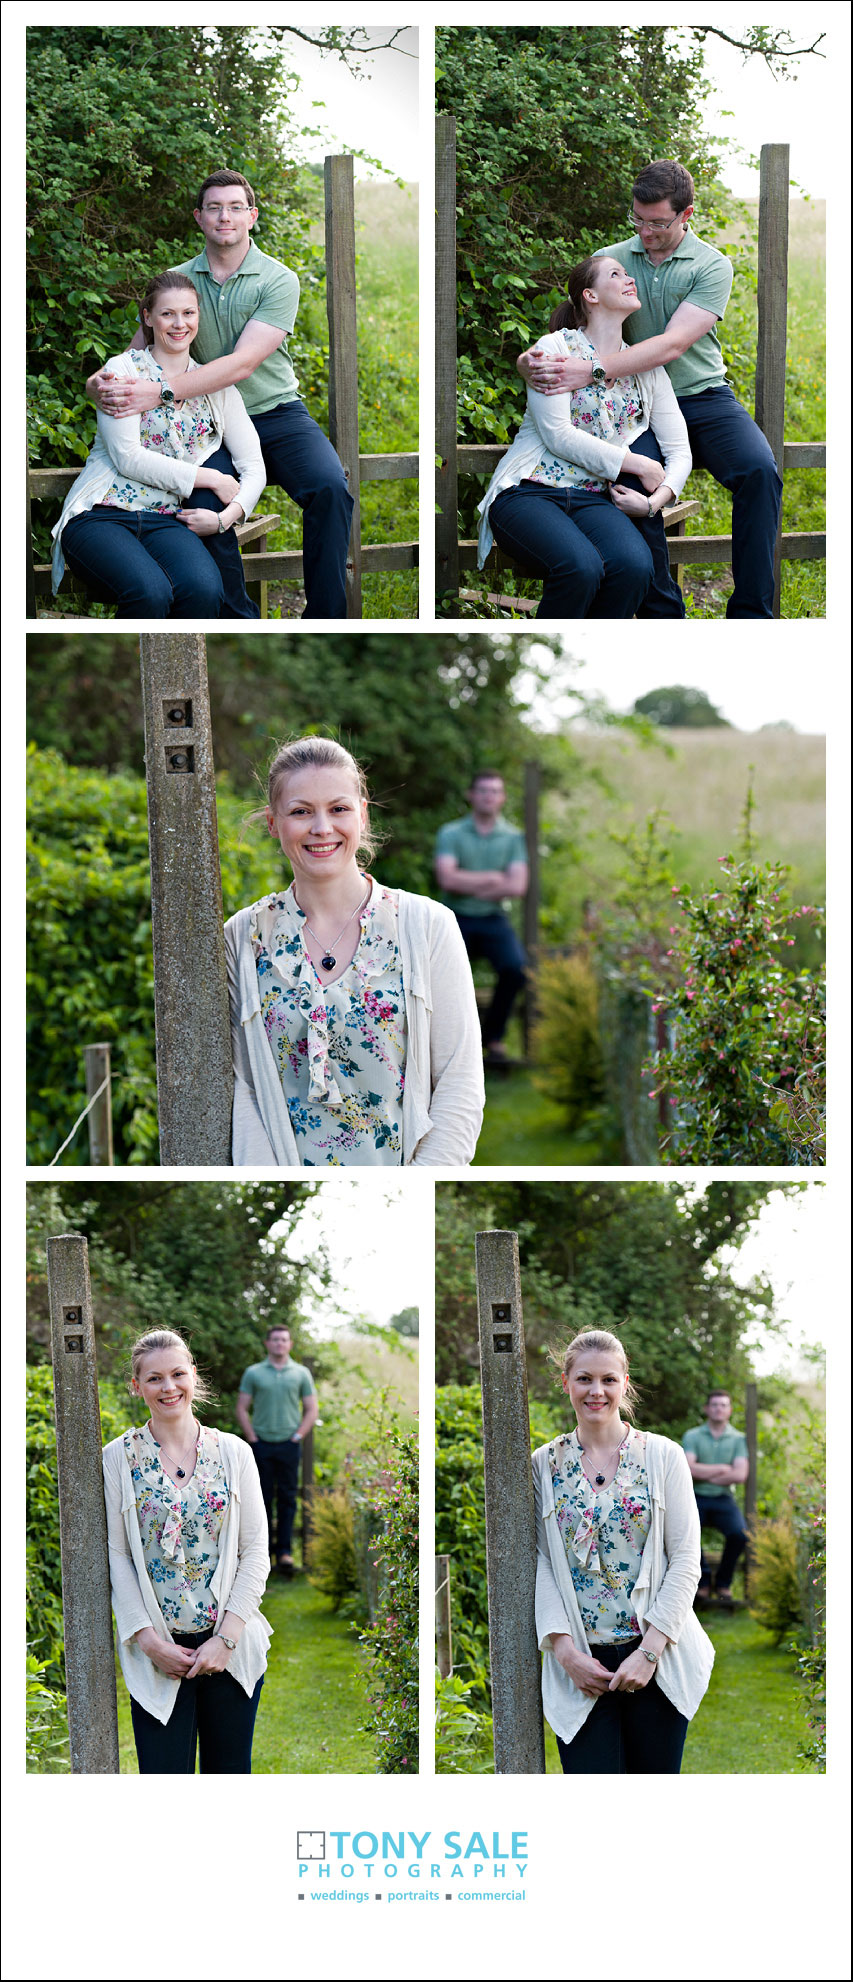 Cait & Ashley photo shoot in Gosfield north Essex